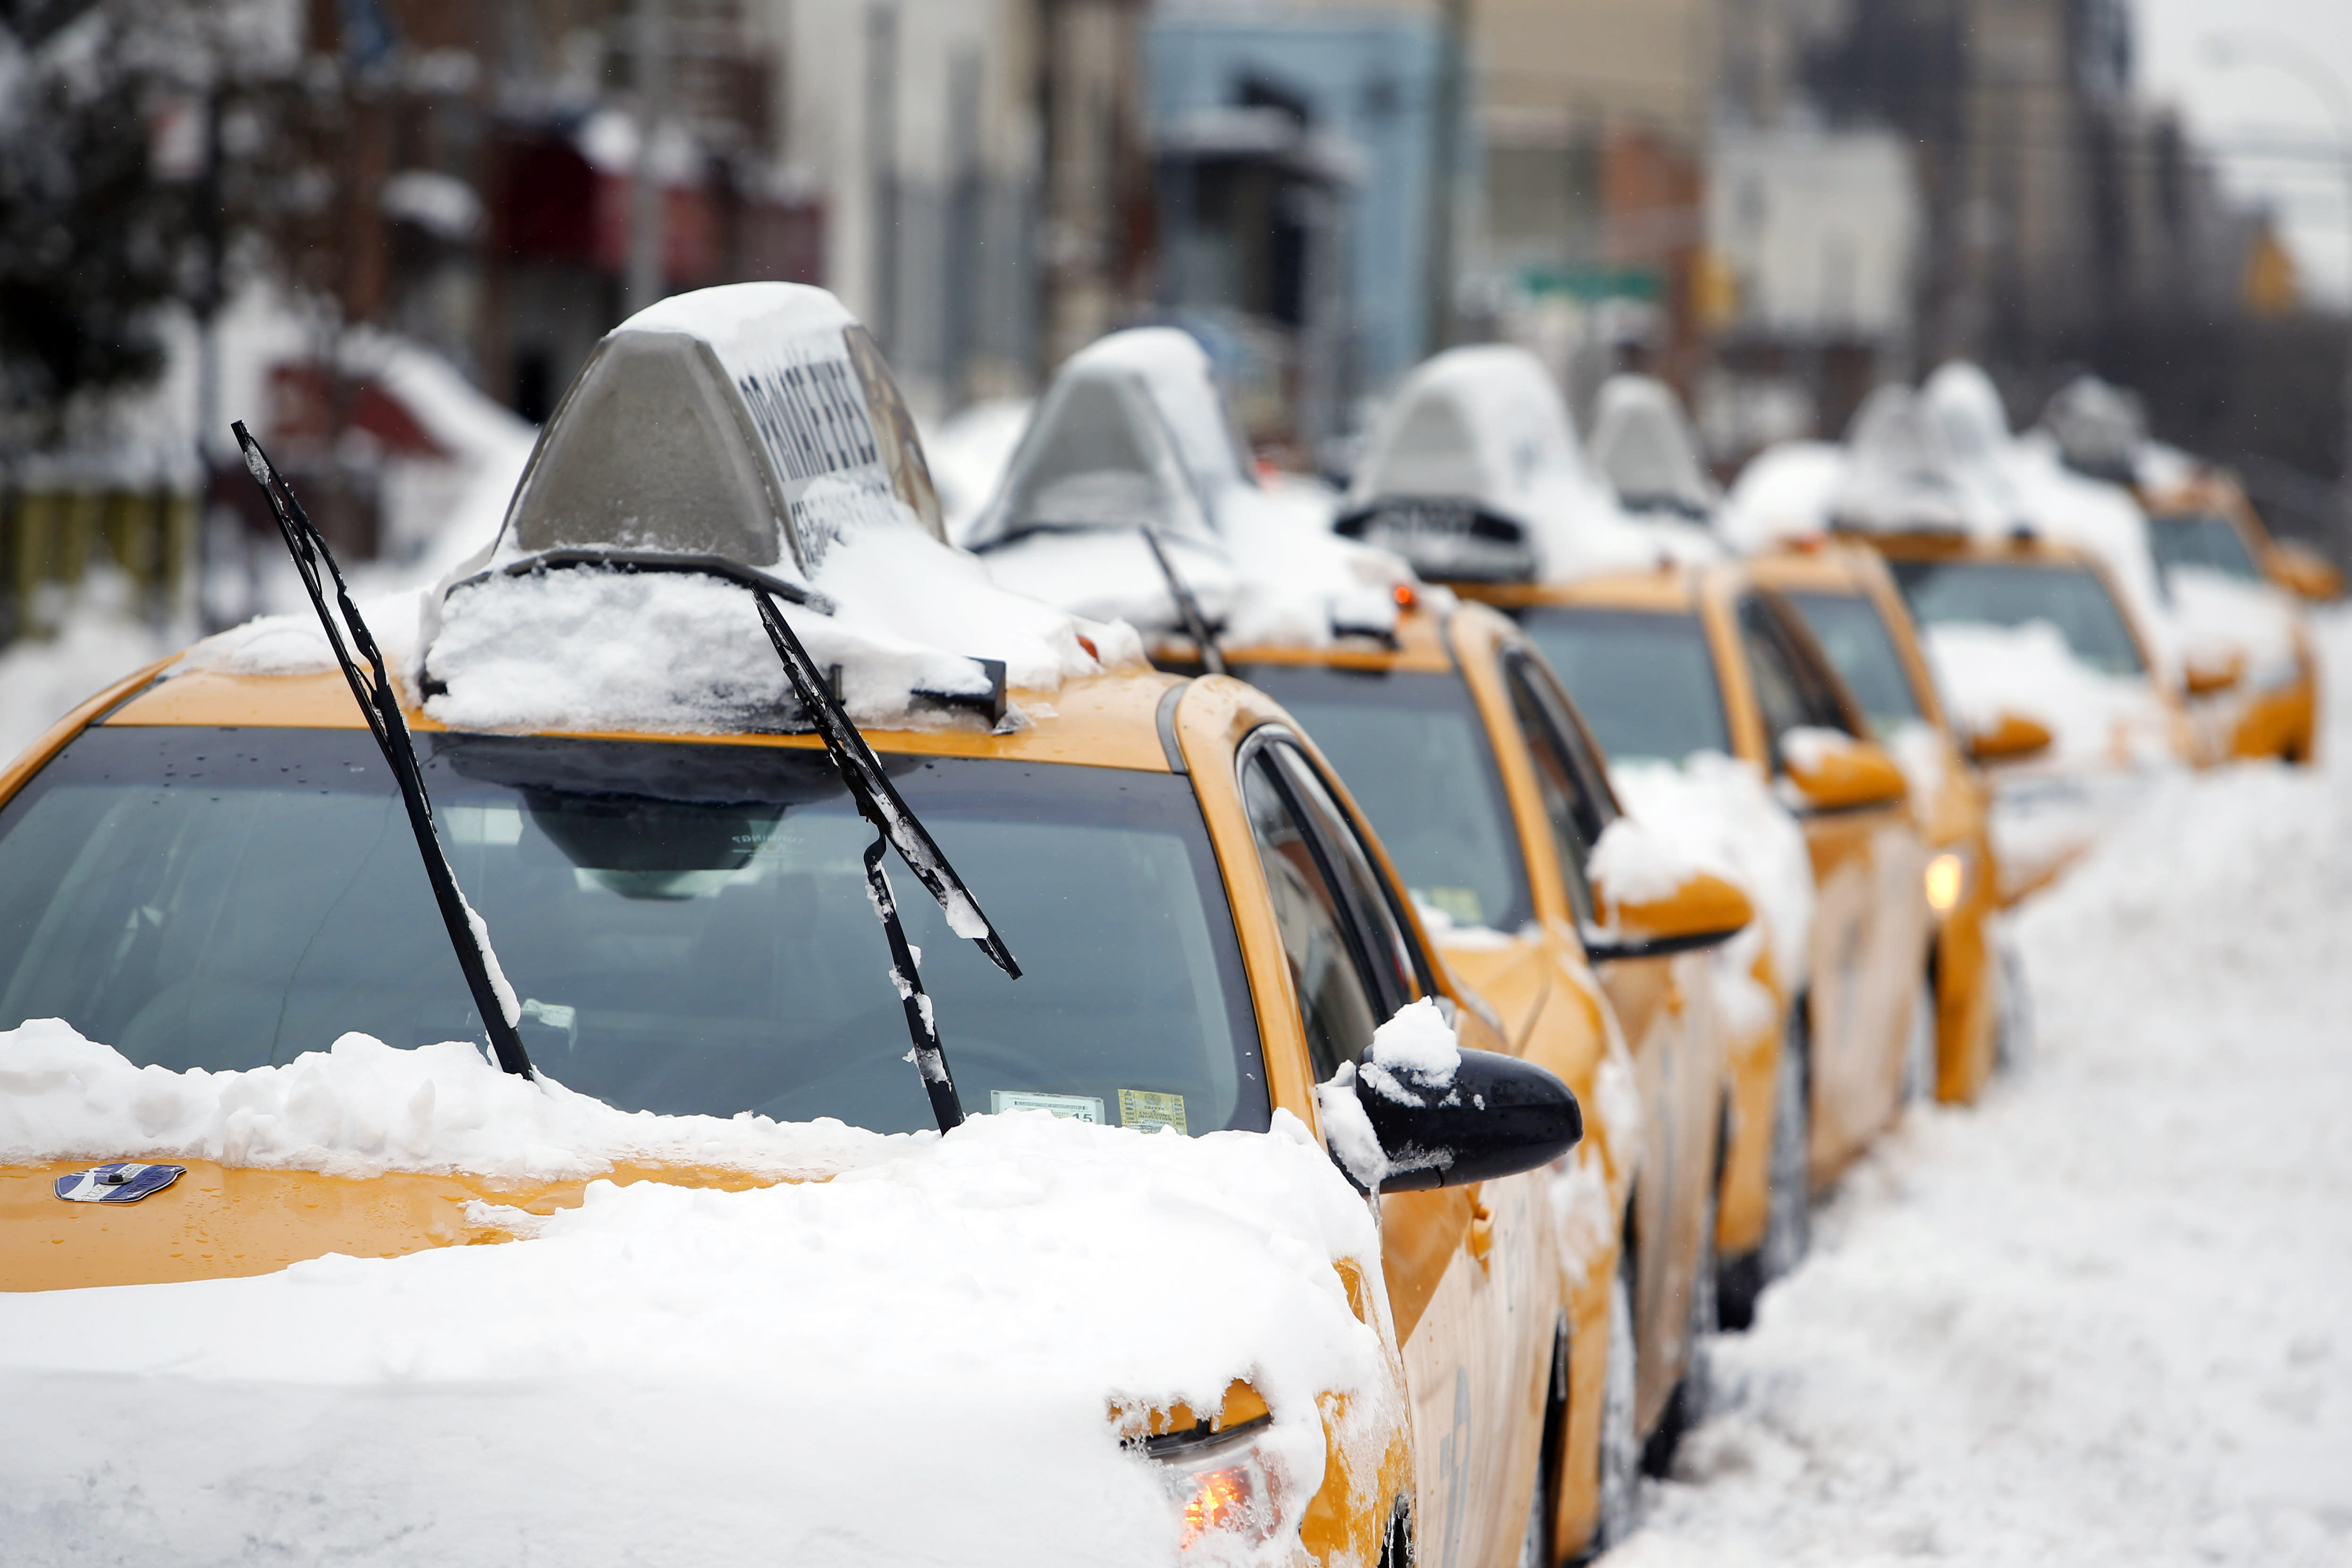 NYC economy lost $200M from fizzled storm, transit shutdown